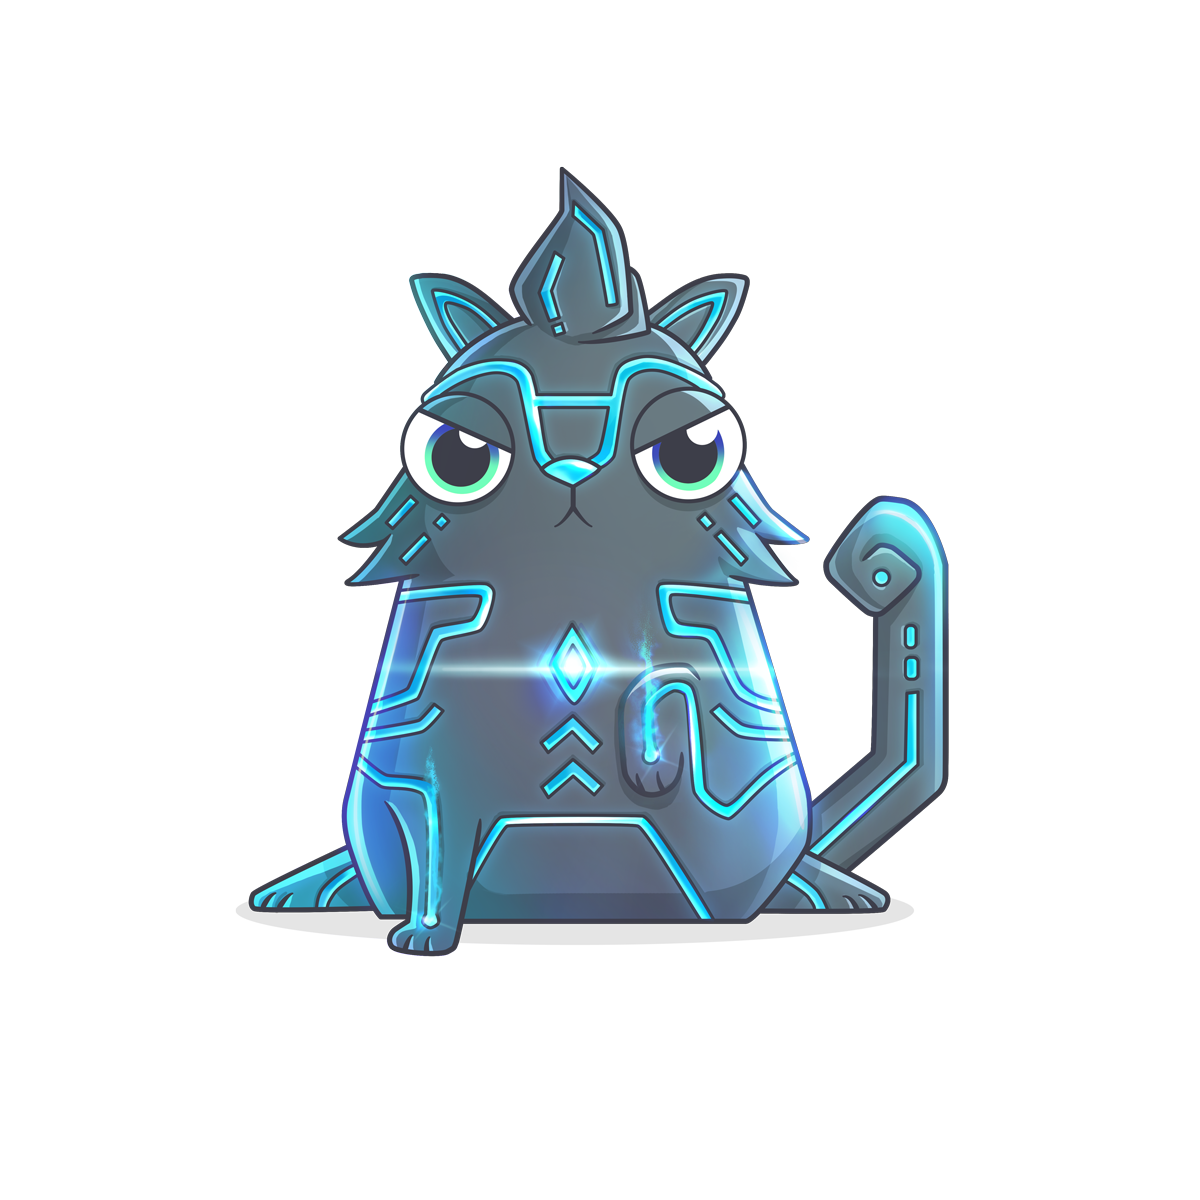 cryptokitty #1328093